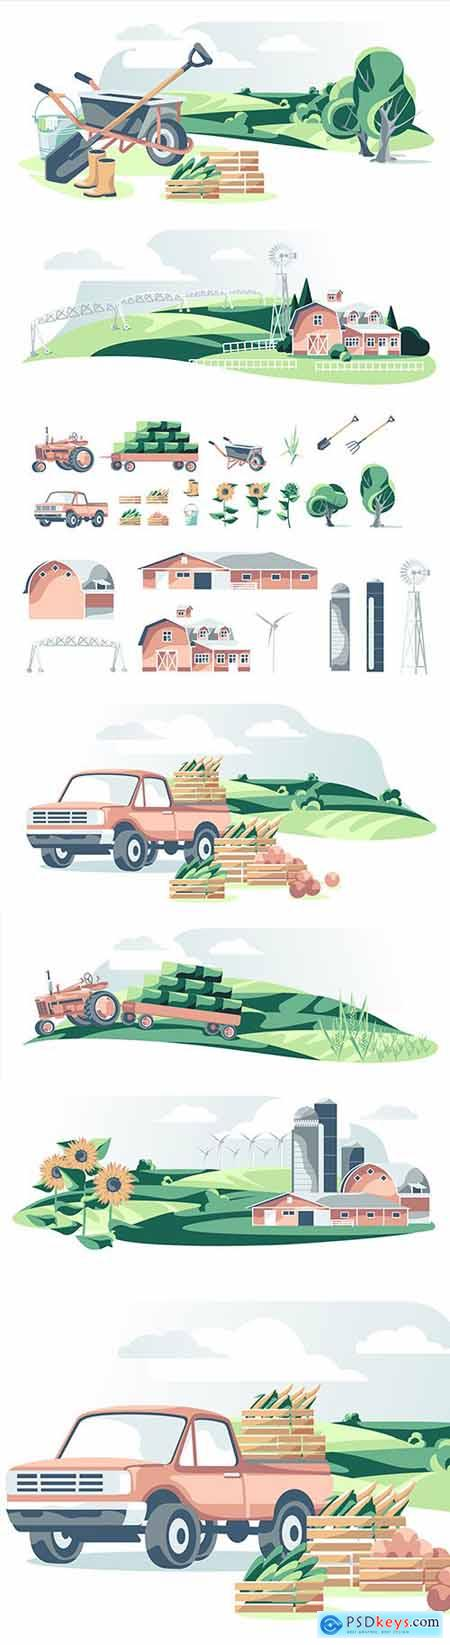 Agricultural equipment and landscape illustration